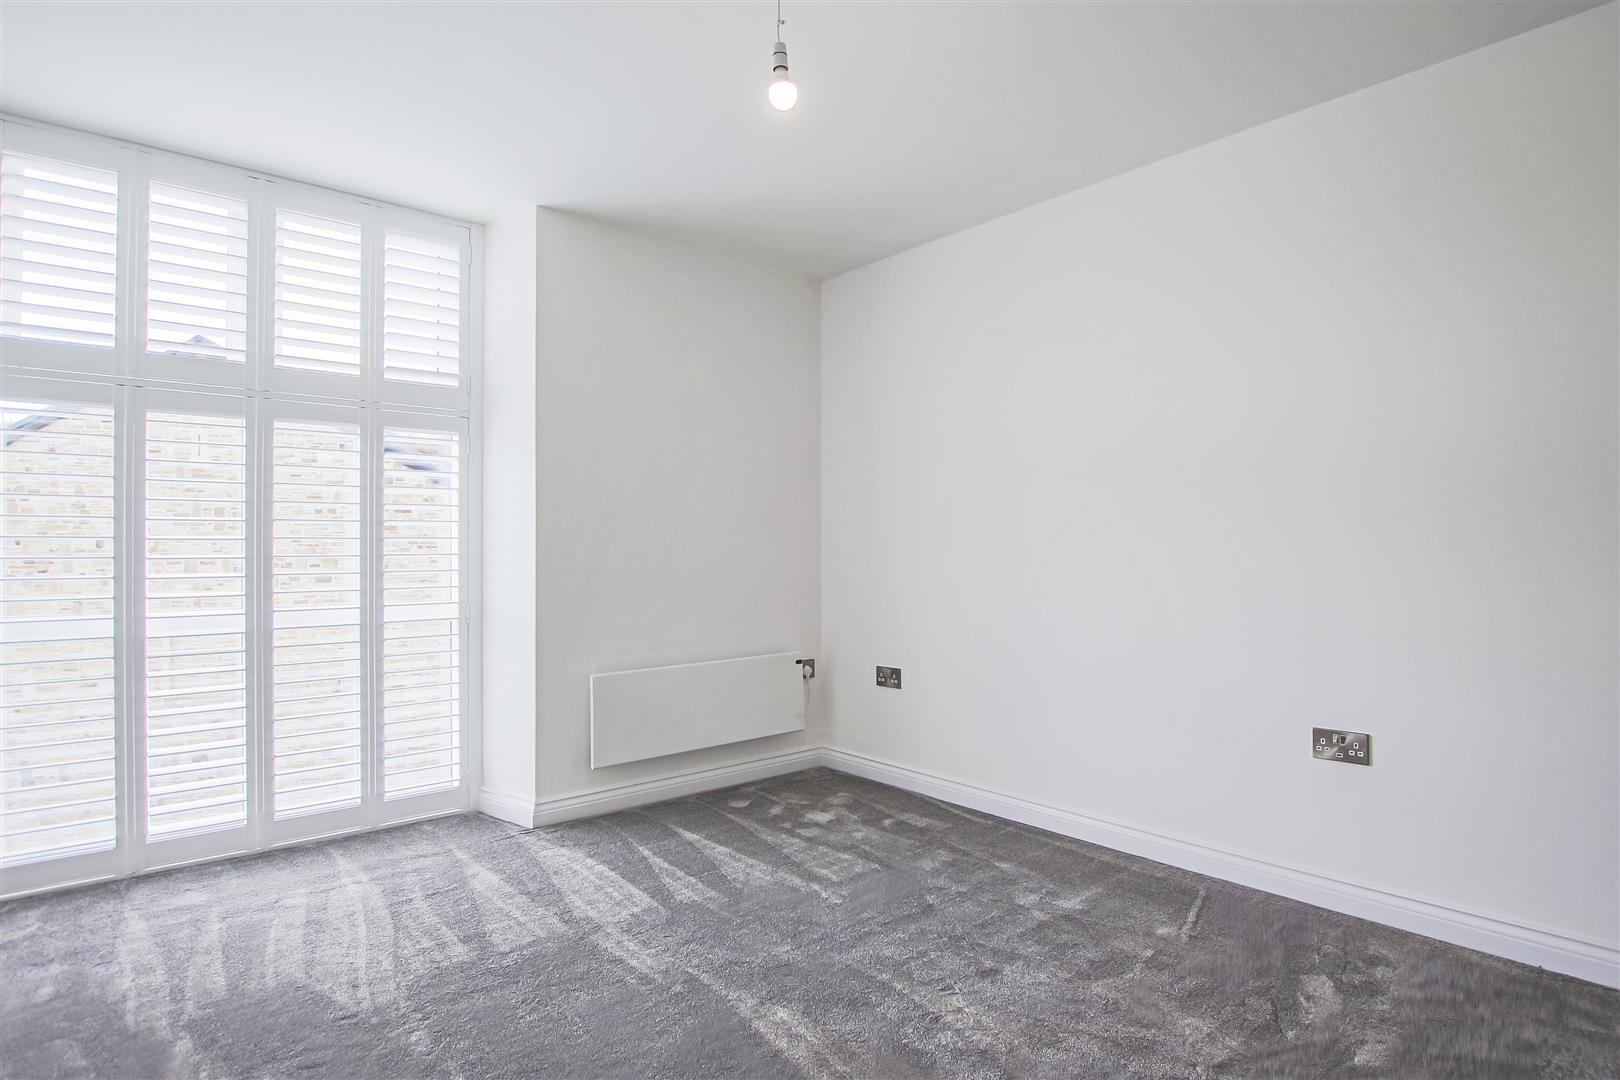 2 Bedroom Apartment For Sale - Image 14